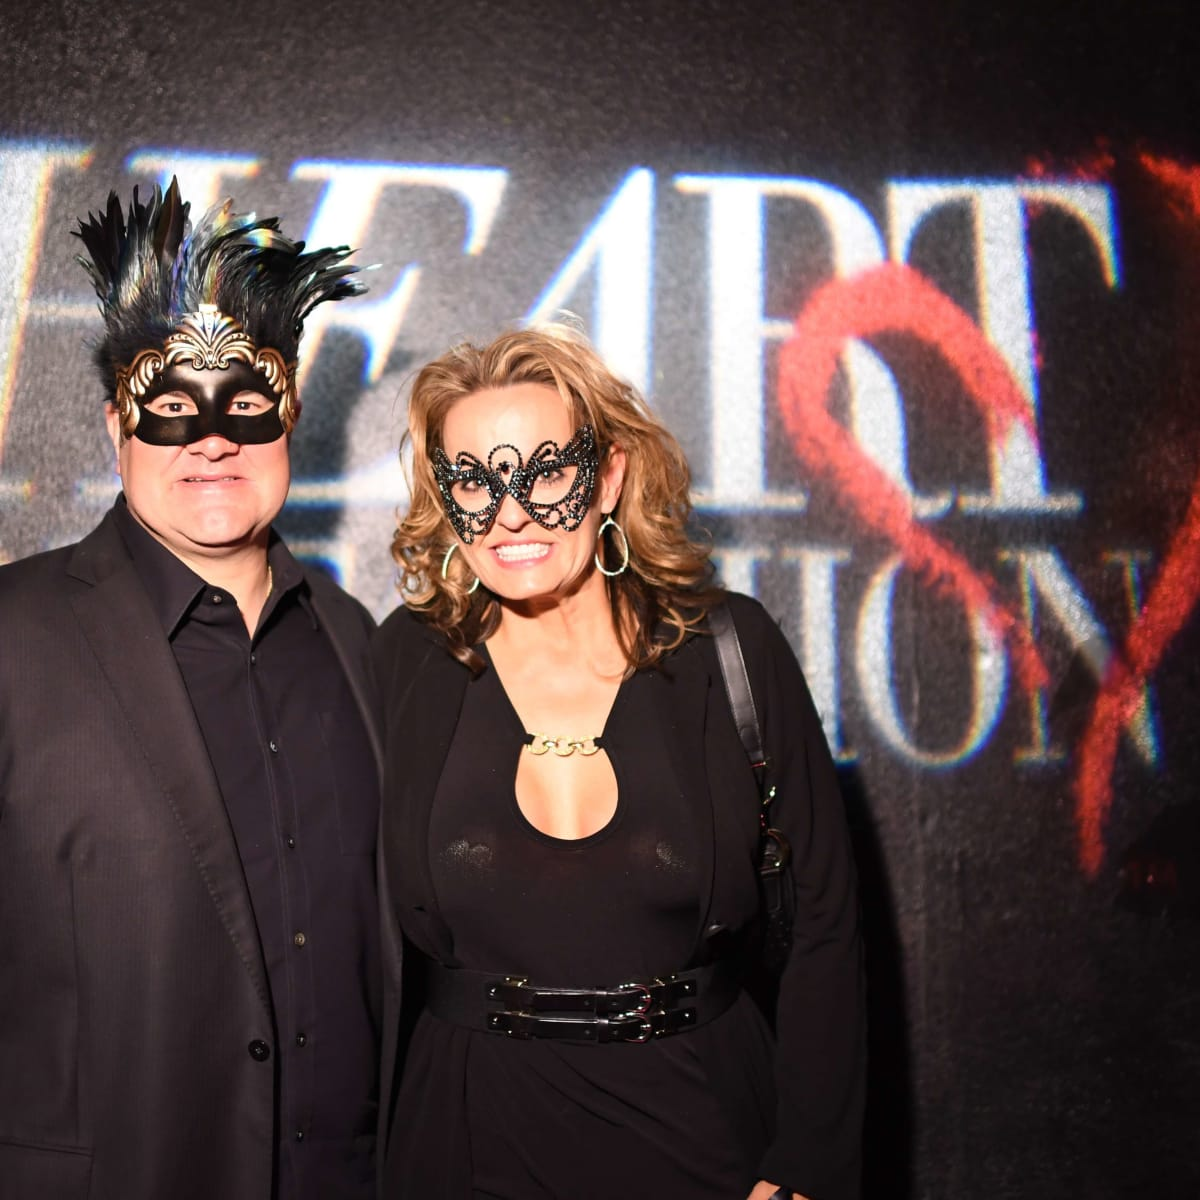 Paul Brown, Pam Brown at Heart of Fashion Masquerade Ball